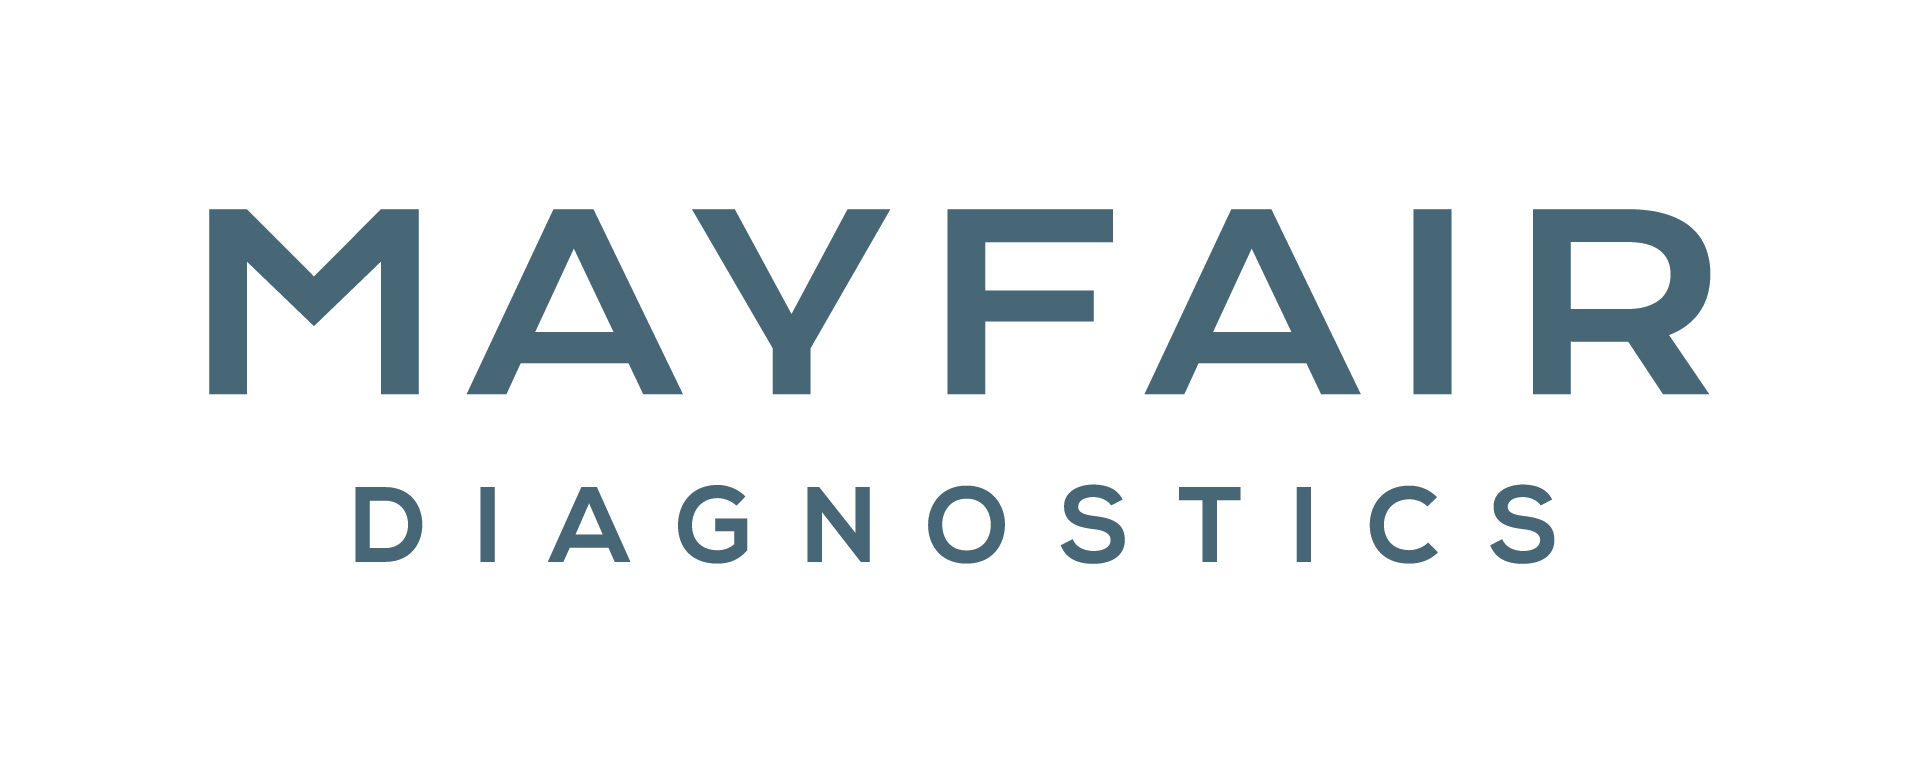 Mayfair Diagnostics Wordmark_RGB